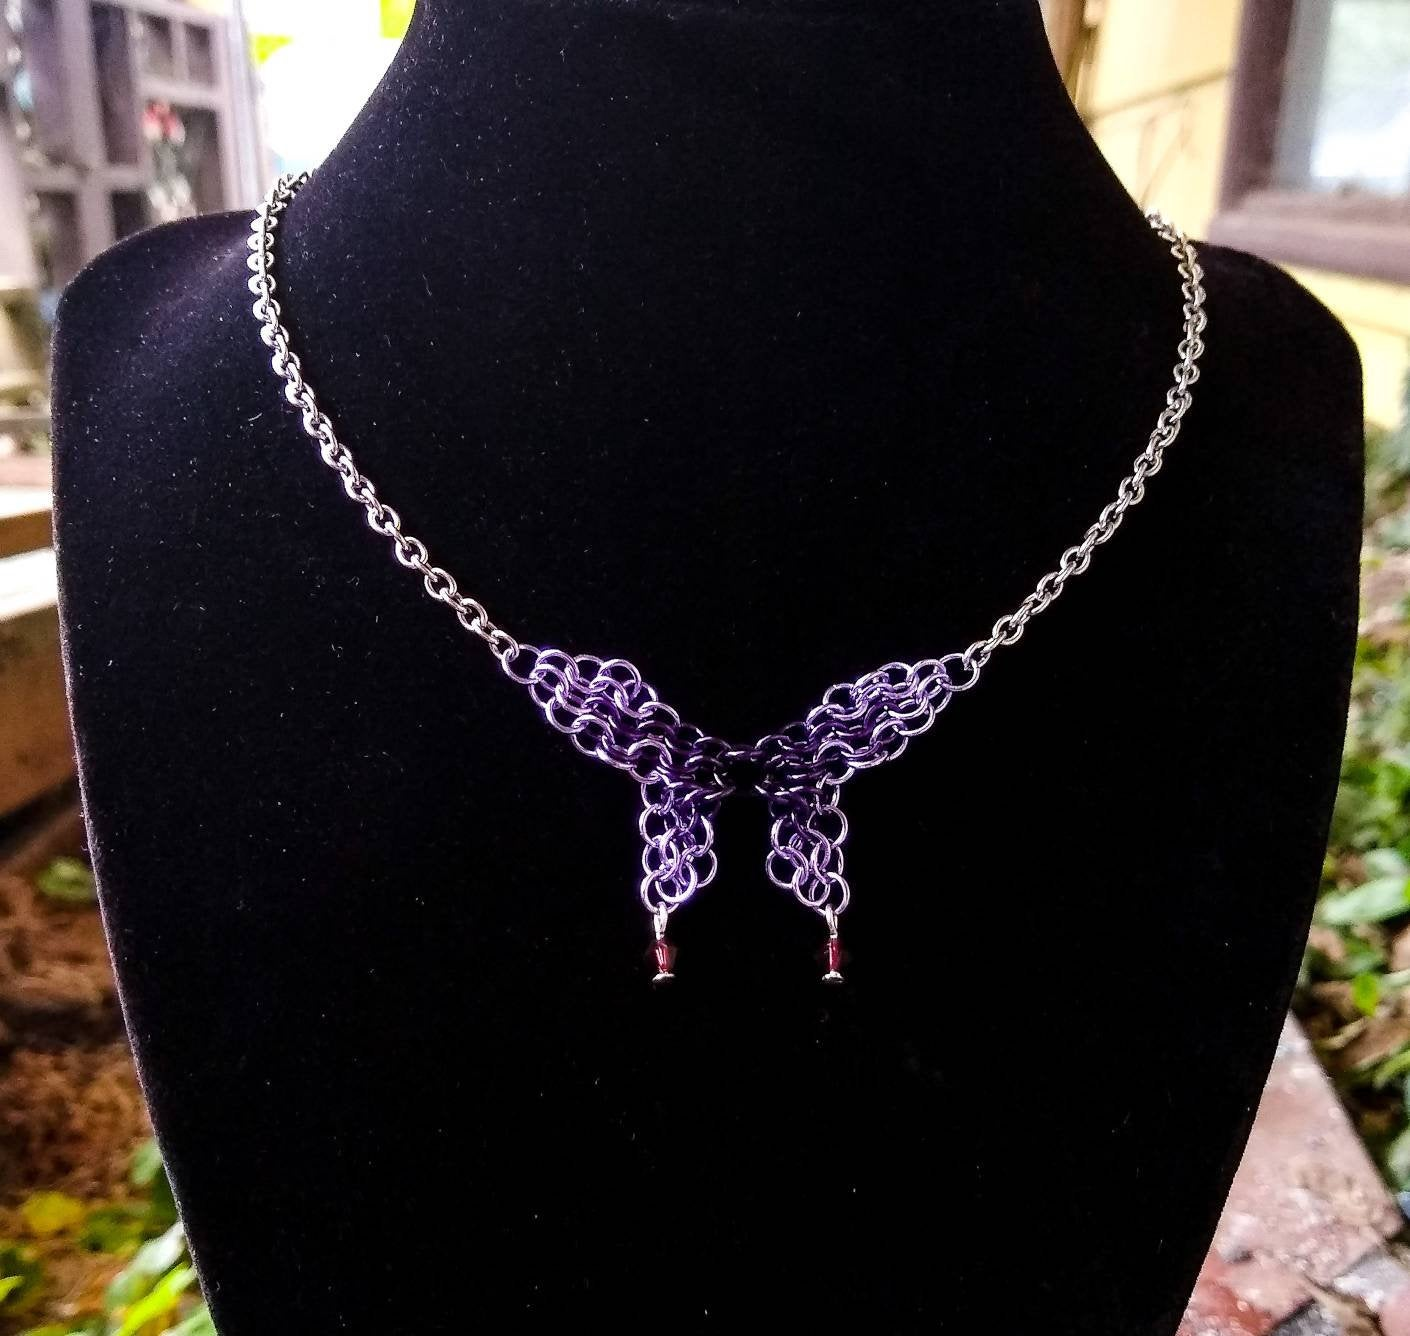 Midnight Purple & Lavender Swarovski Crystal Butterfly Chainmaille Necklace - Rayven's Chainmaille